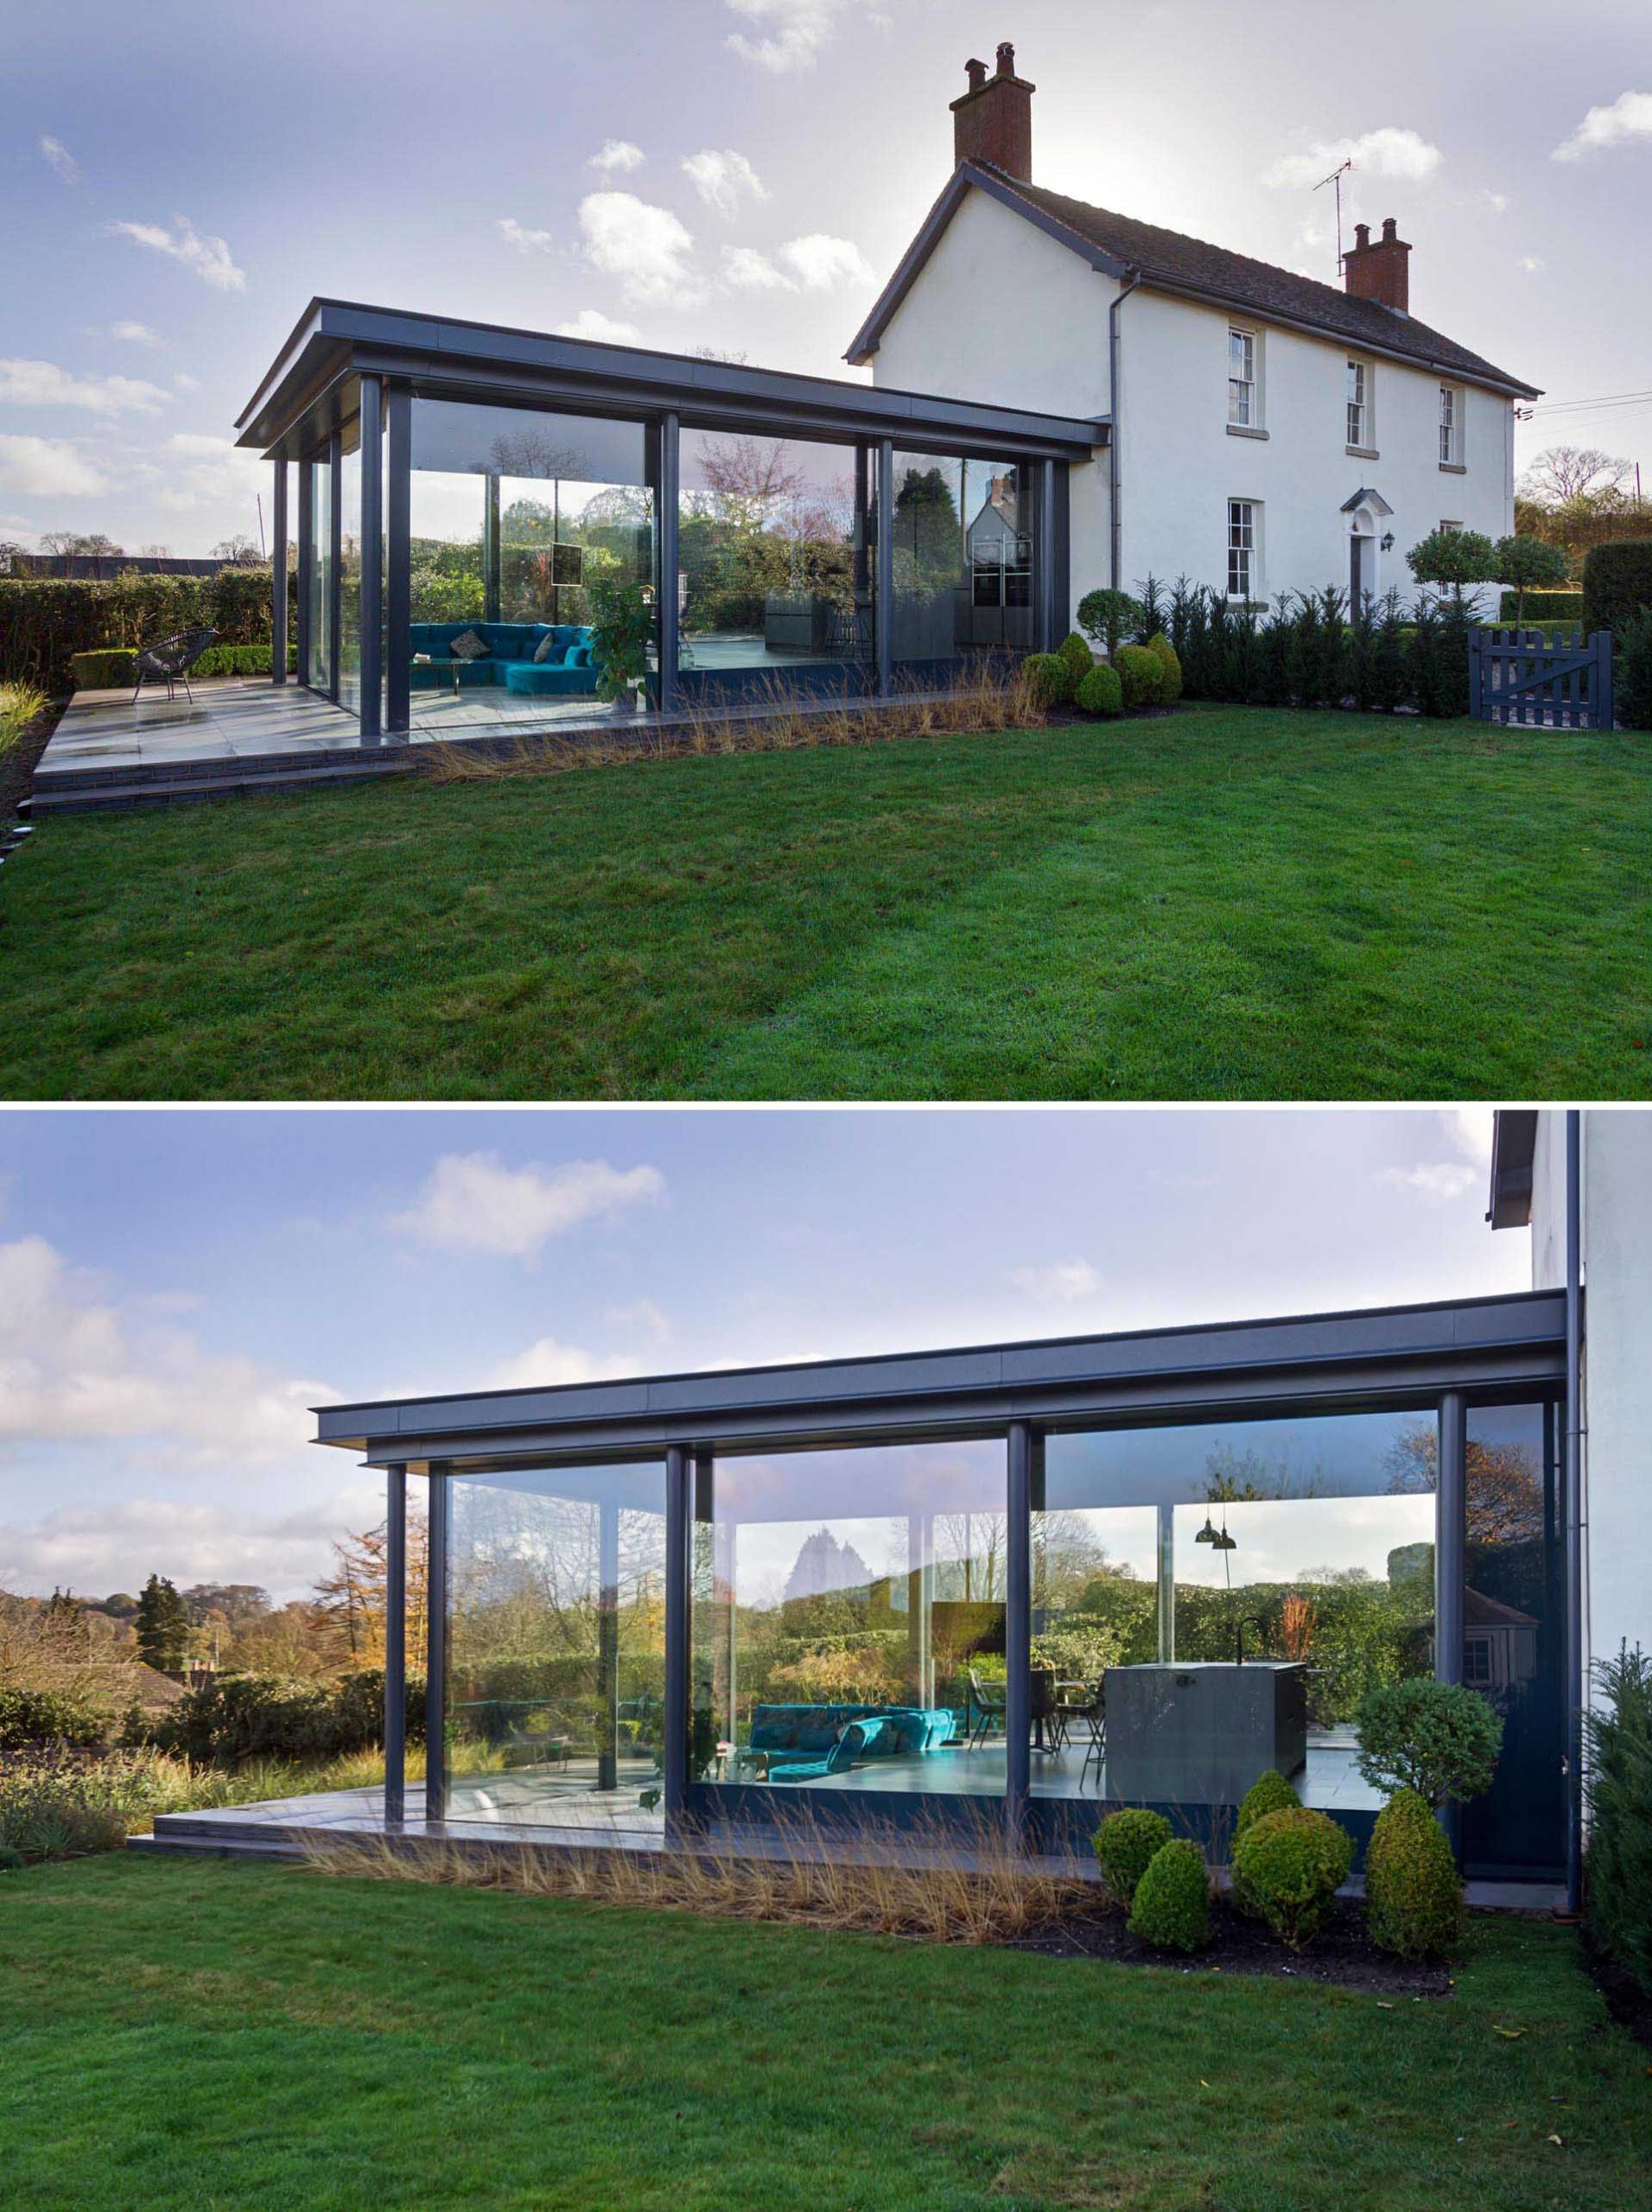 A modern glass enclosed addition for a Grade II Listed cottage in a small hamlet in Staffordshire, England.